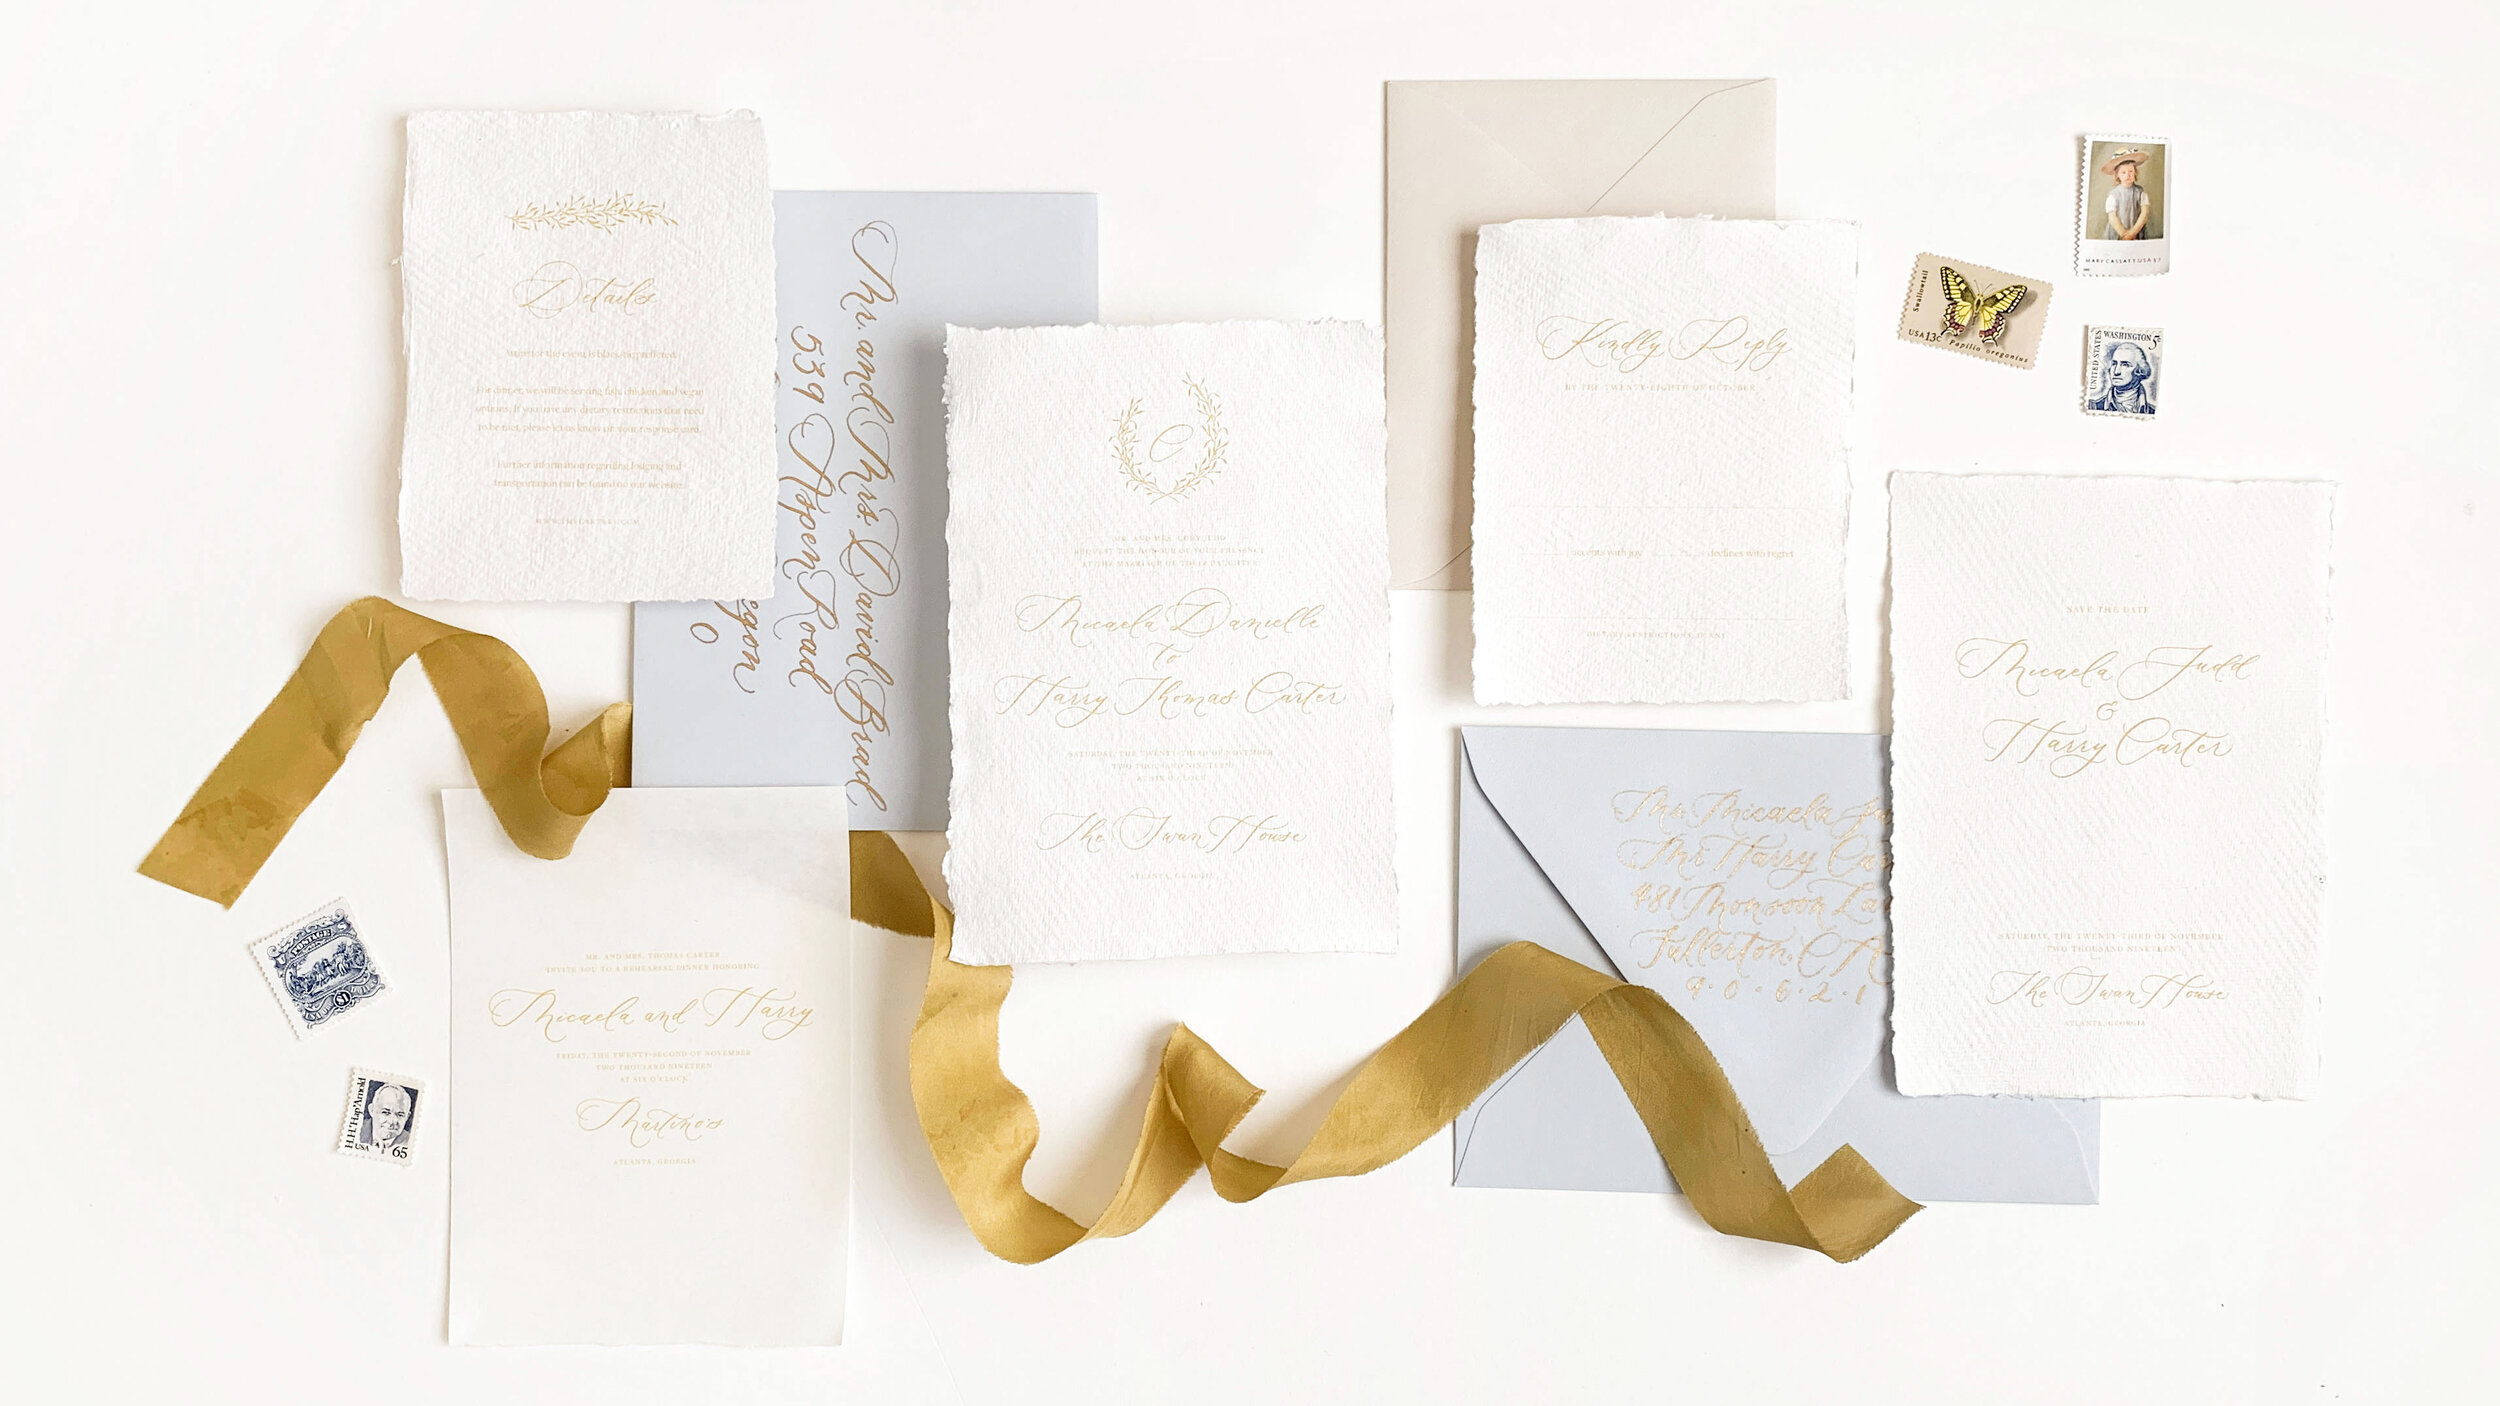 Elegant and timeless wedding invitations with crest and romantic modern calligraphy. Printed on handmade paper and tied with hand-dyed silk ribbon. Calligraphy addressing and vintage postage. Luxury wedding invitations.